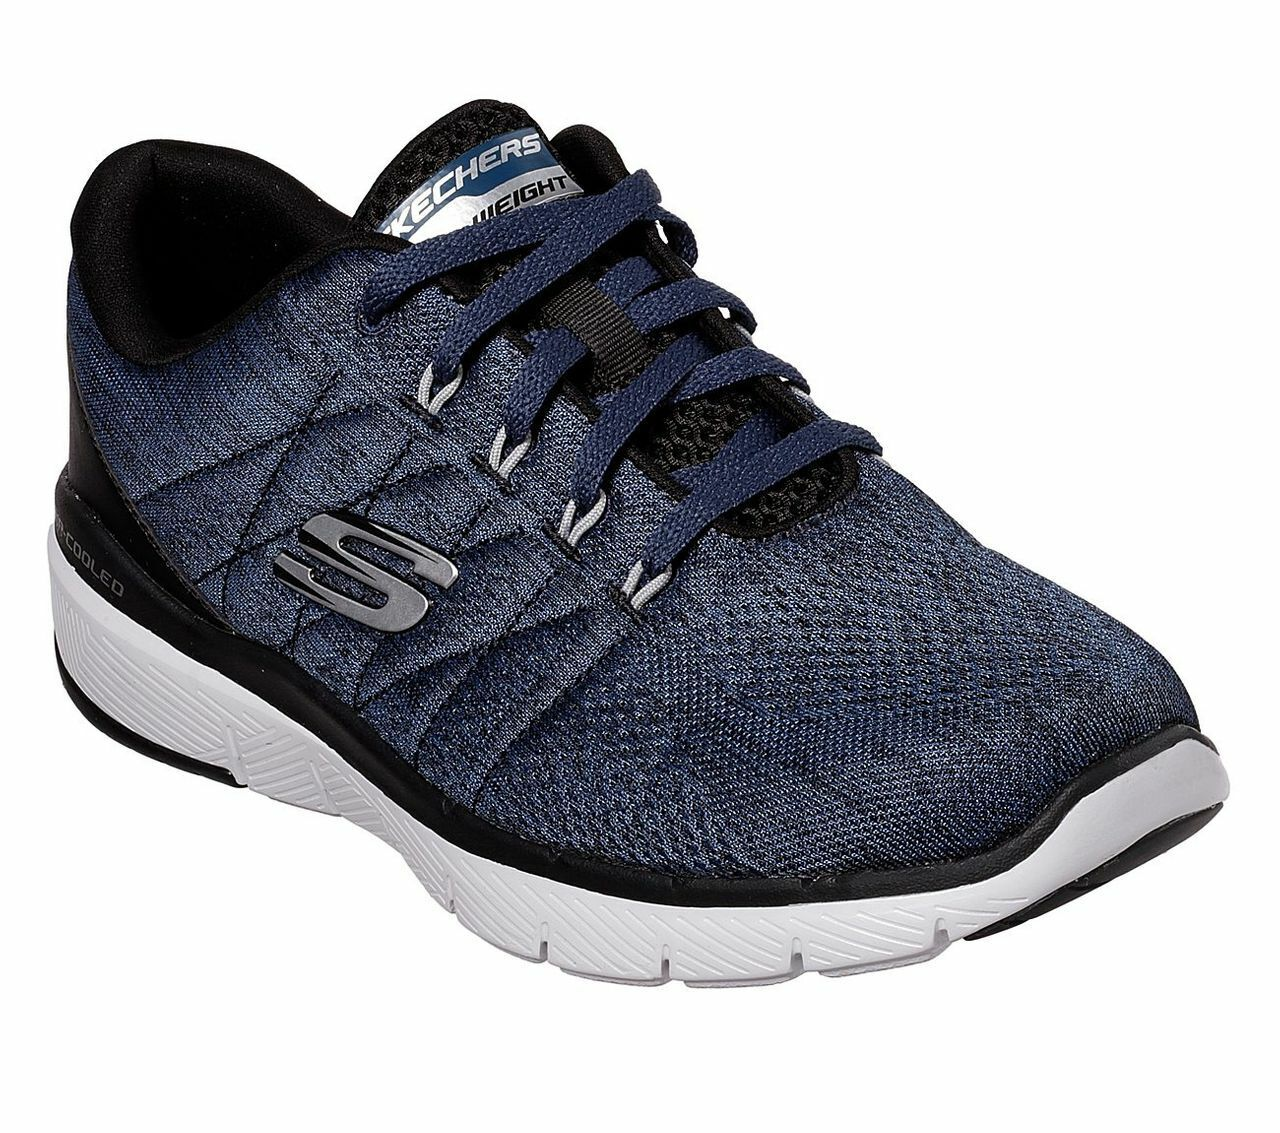 Skechers Sports Men's Flex Advantage 3.0 Stally Trainers Men's Running shoes